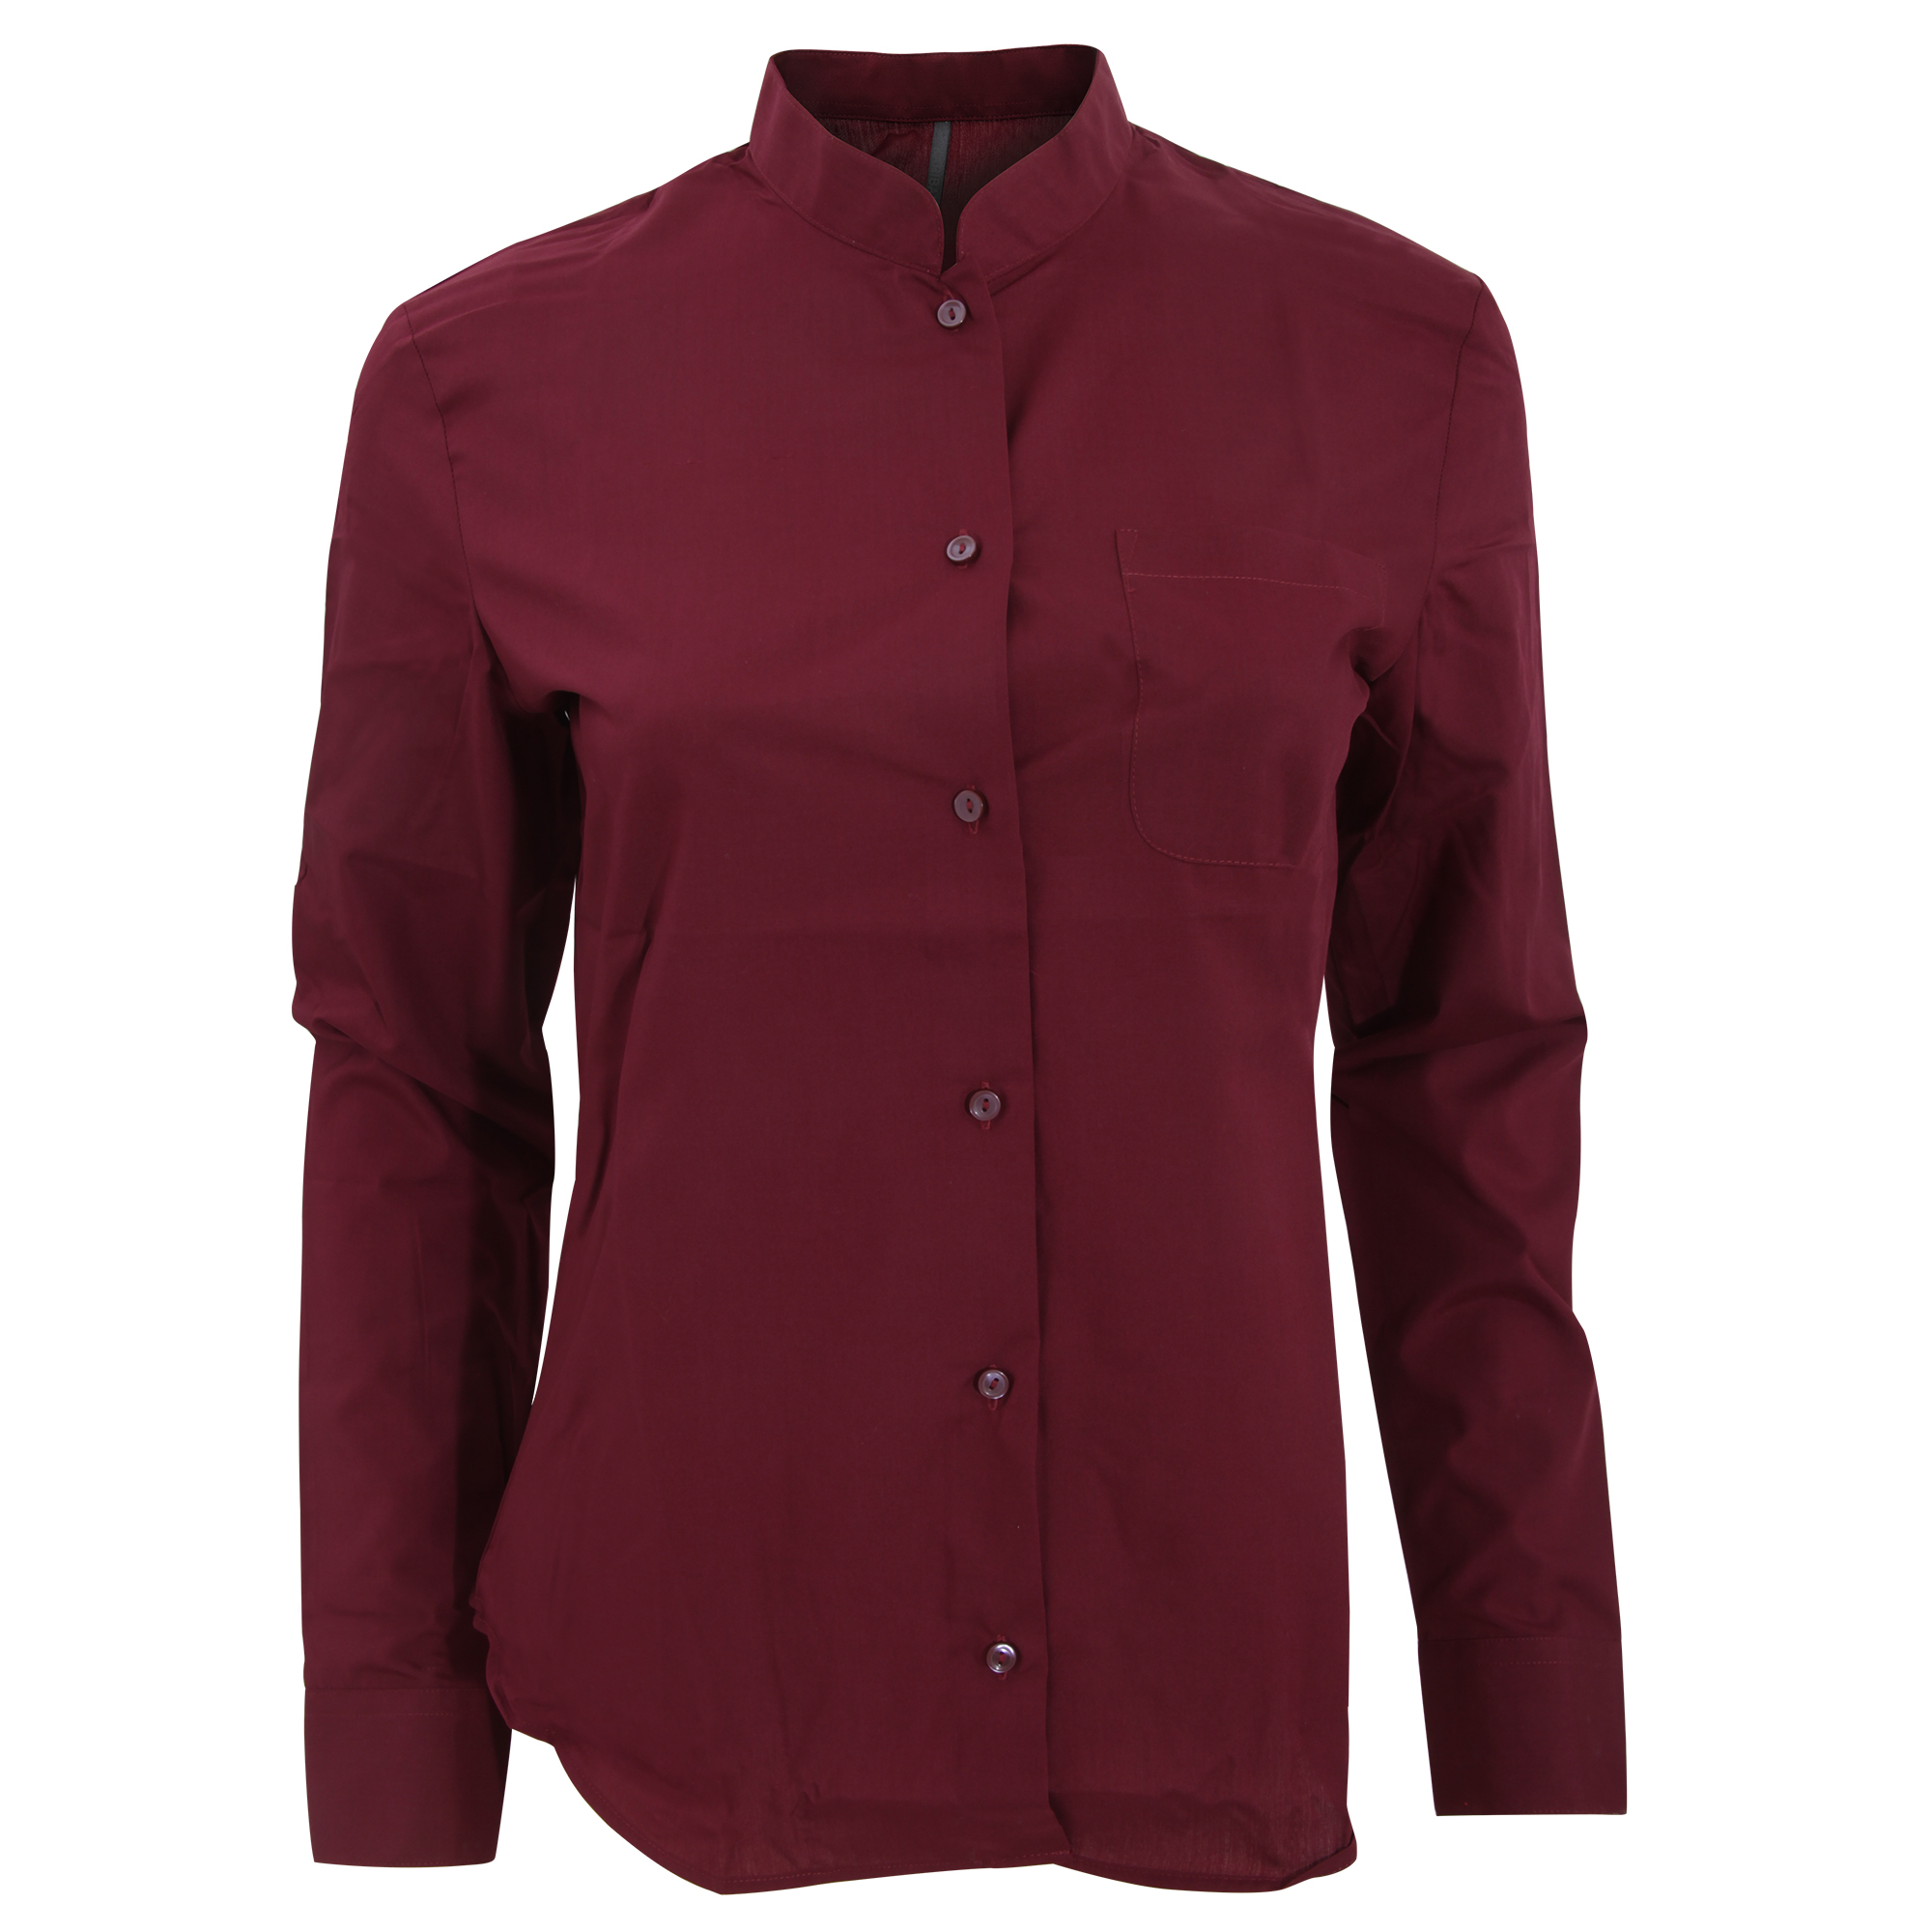 Kariban Womens Ladies Long Sleeve Mandarin Collar Shirt Ebay